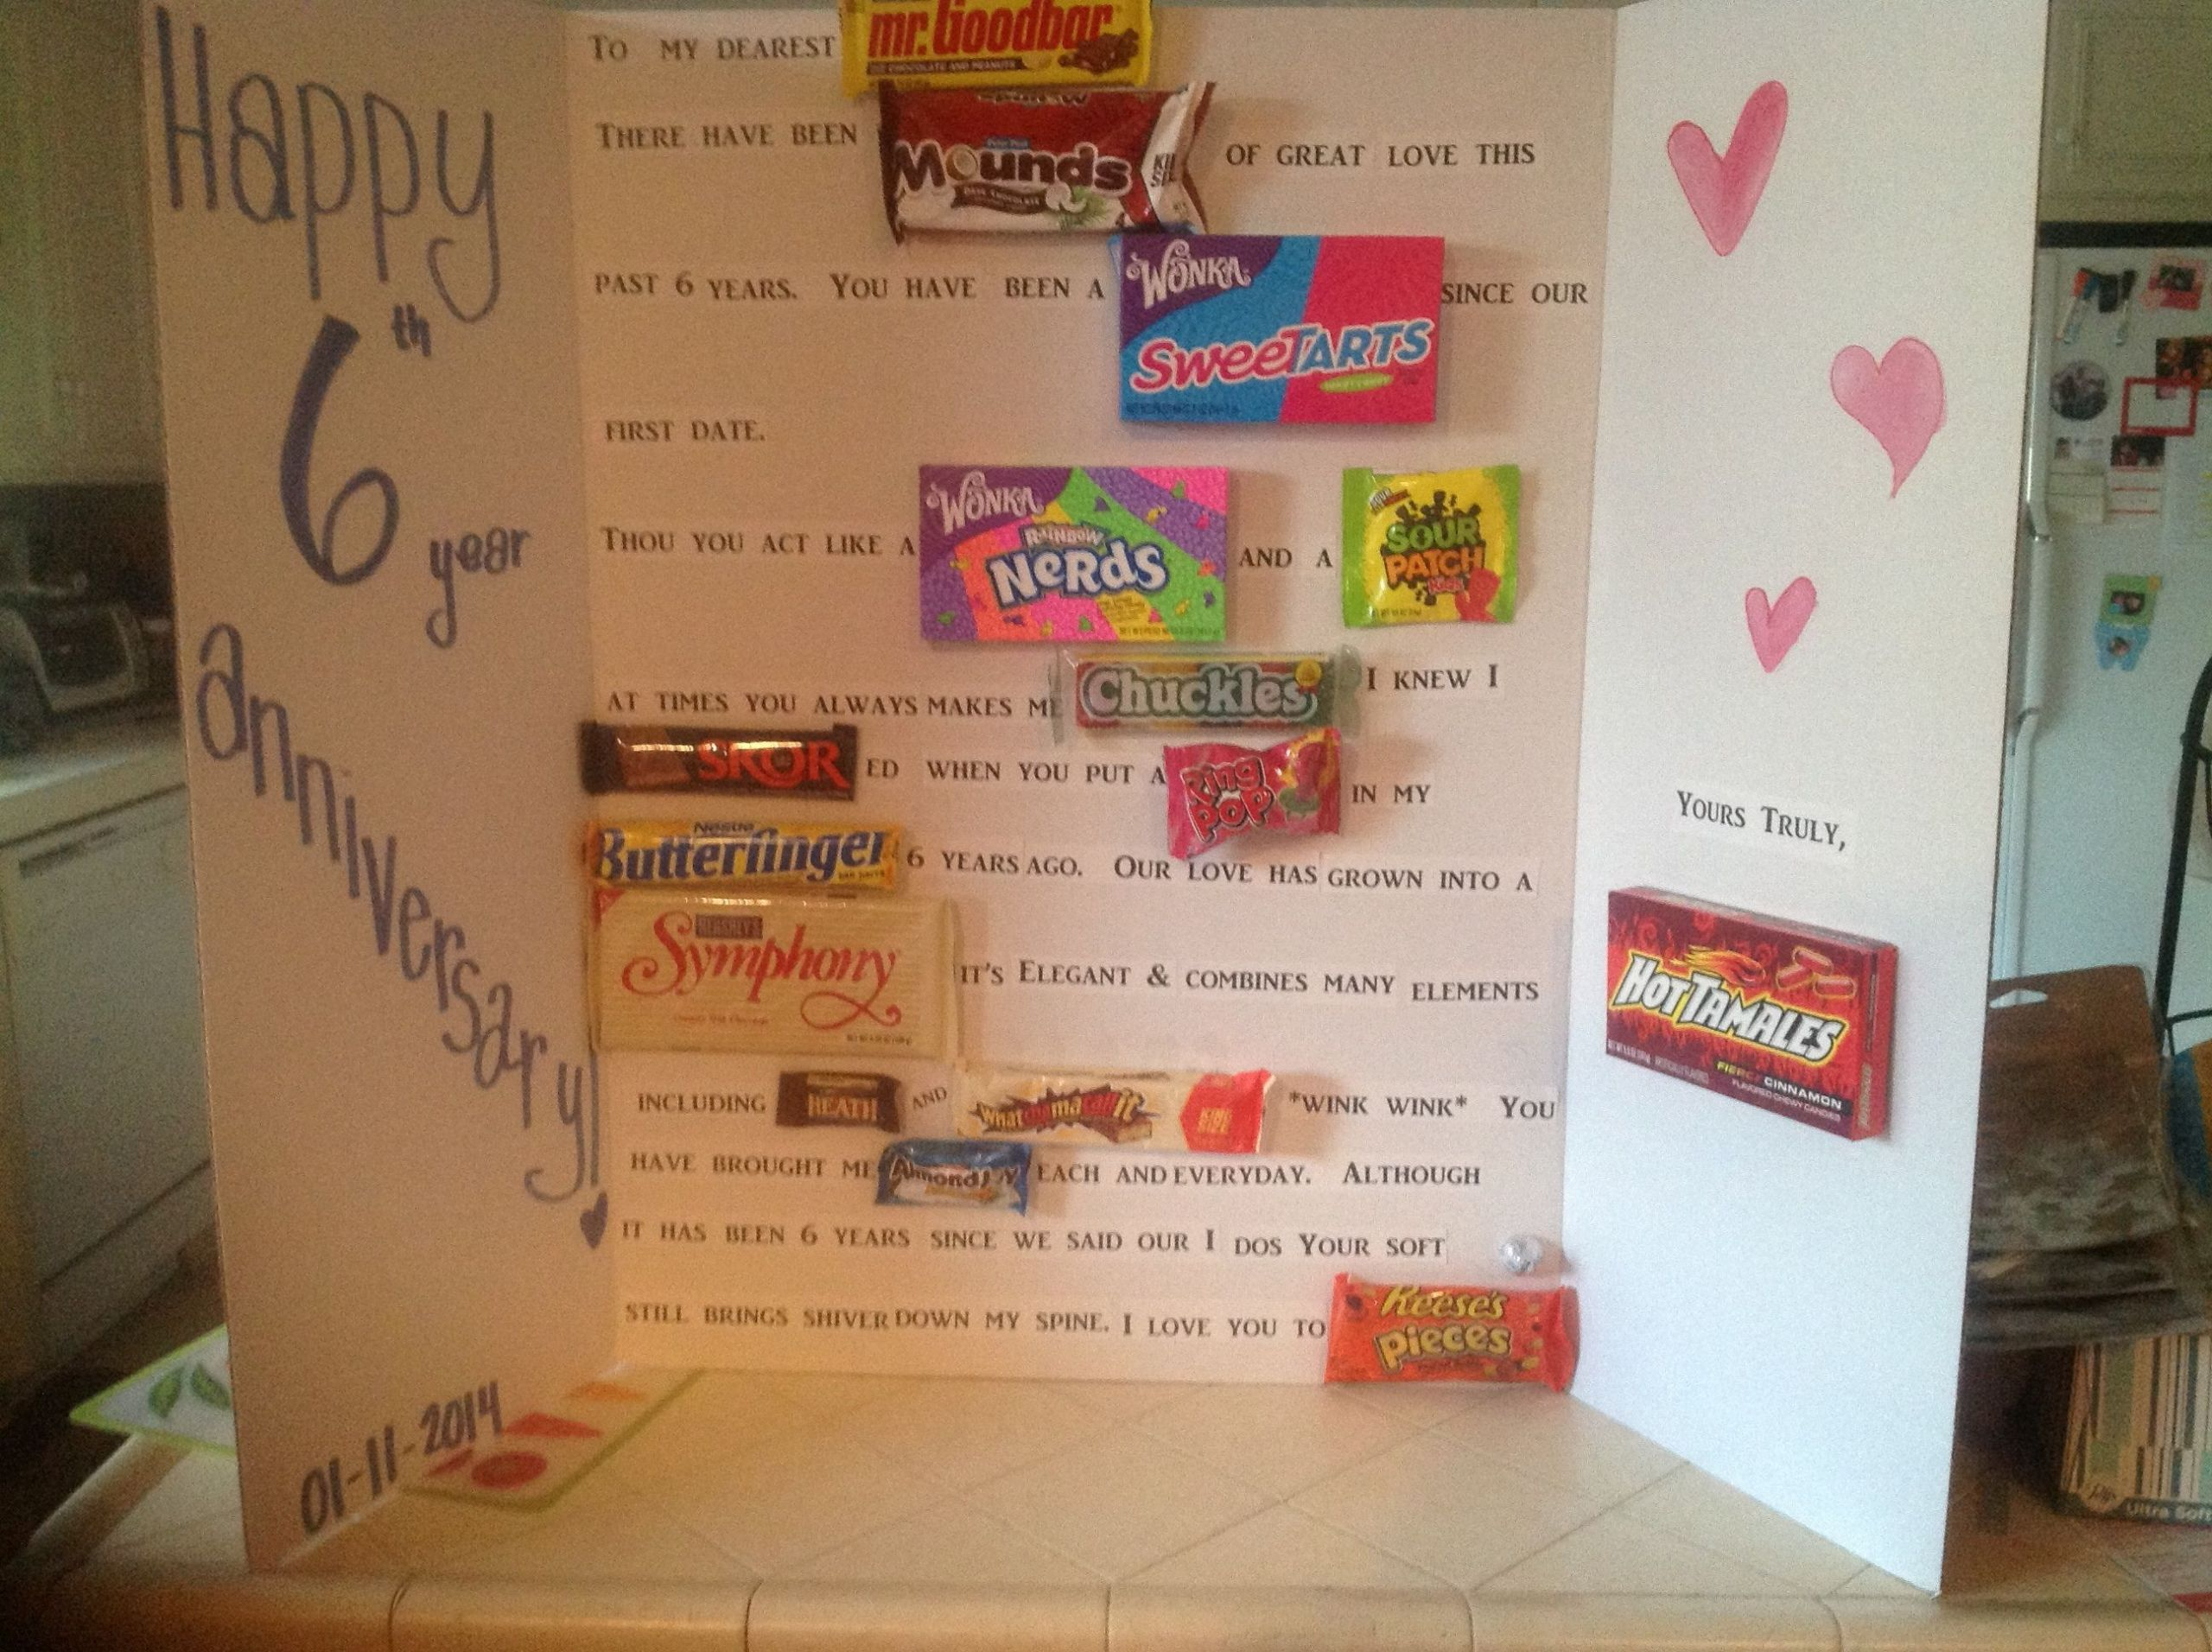 6Th Wedding Anniversary Gift Ideas For Her  6 year wedding anniversary traditional t candy or